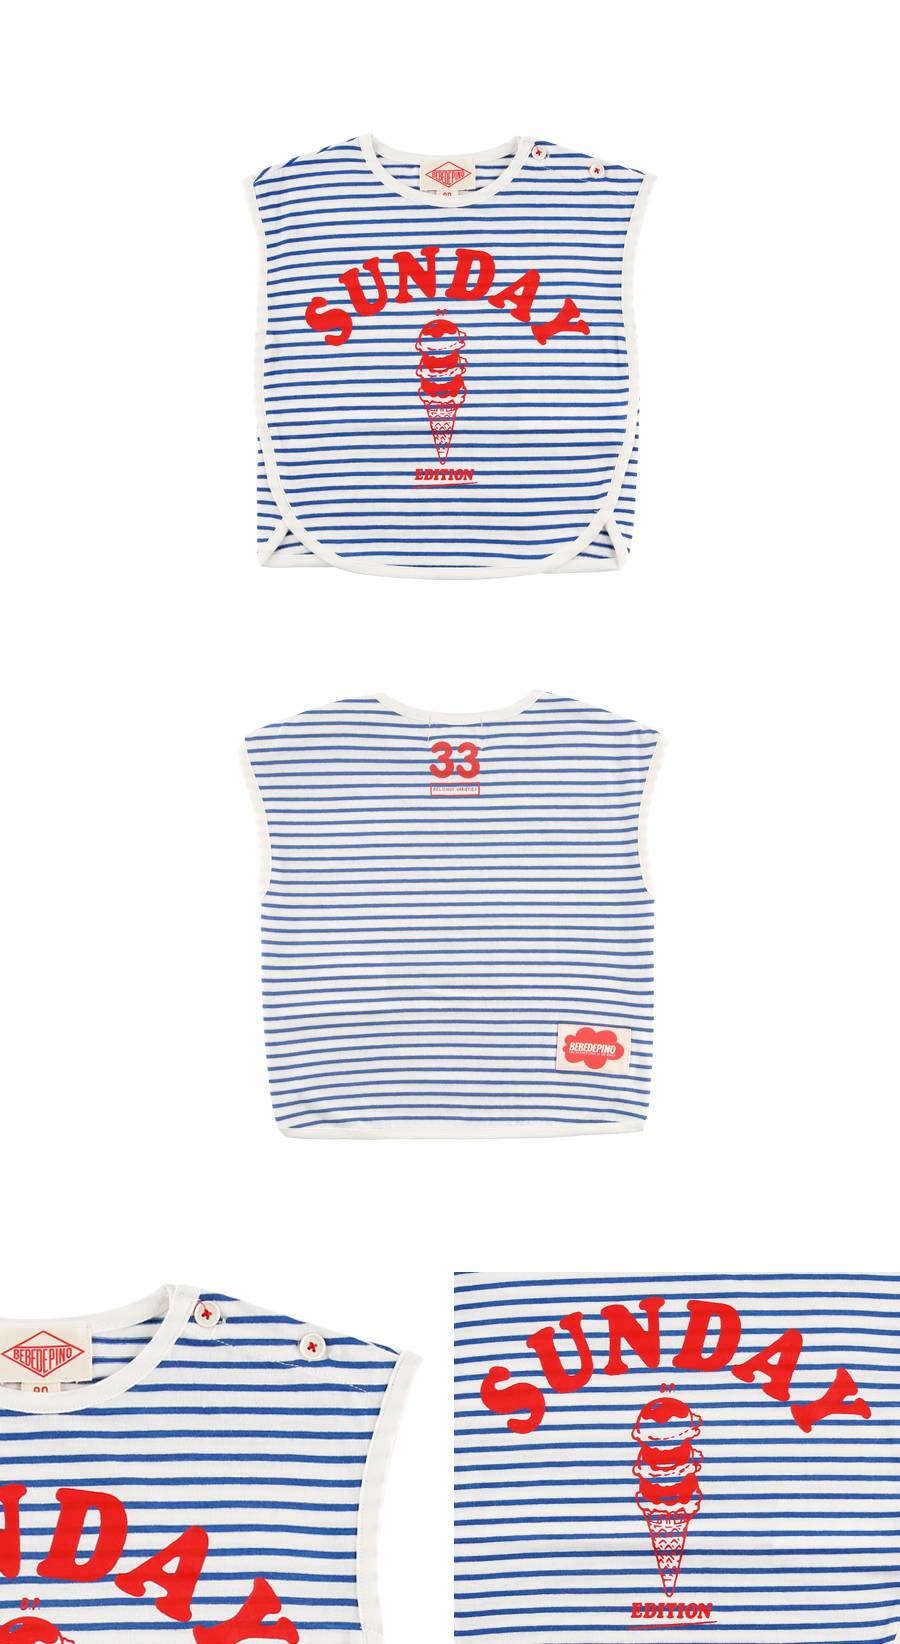 Sunday ice cream baby stripe sleeveless tee 상세 이미지